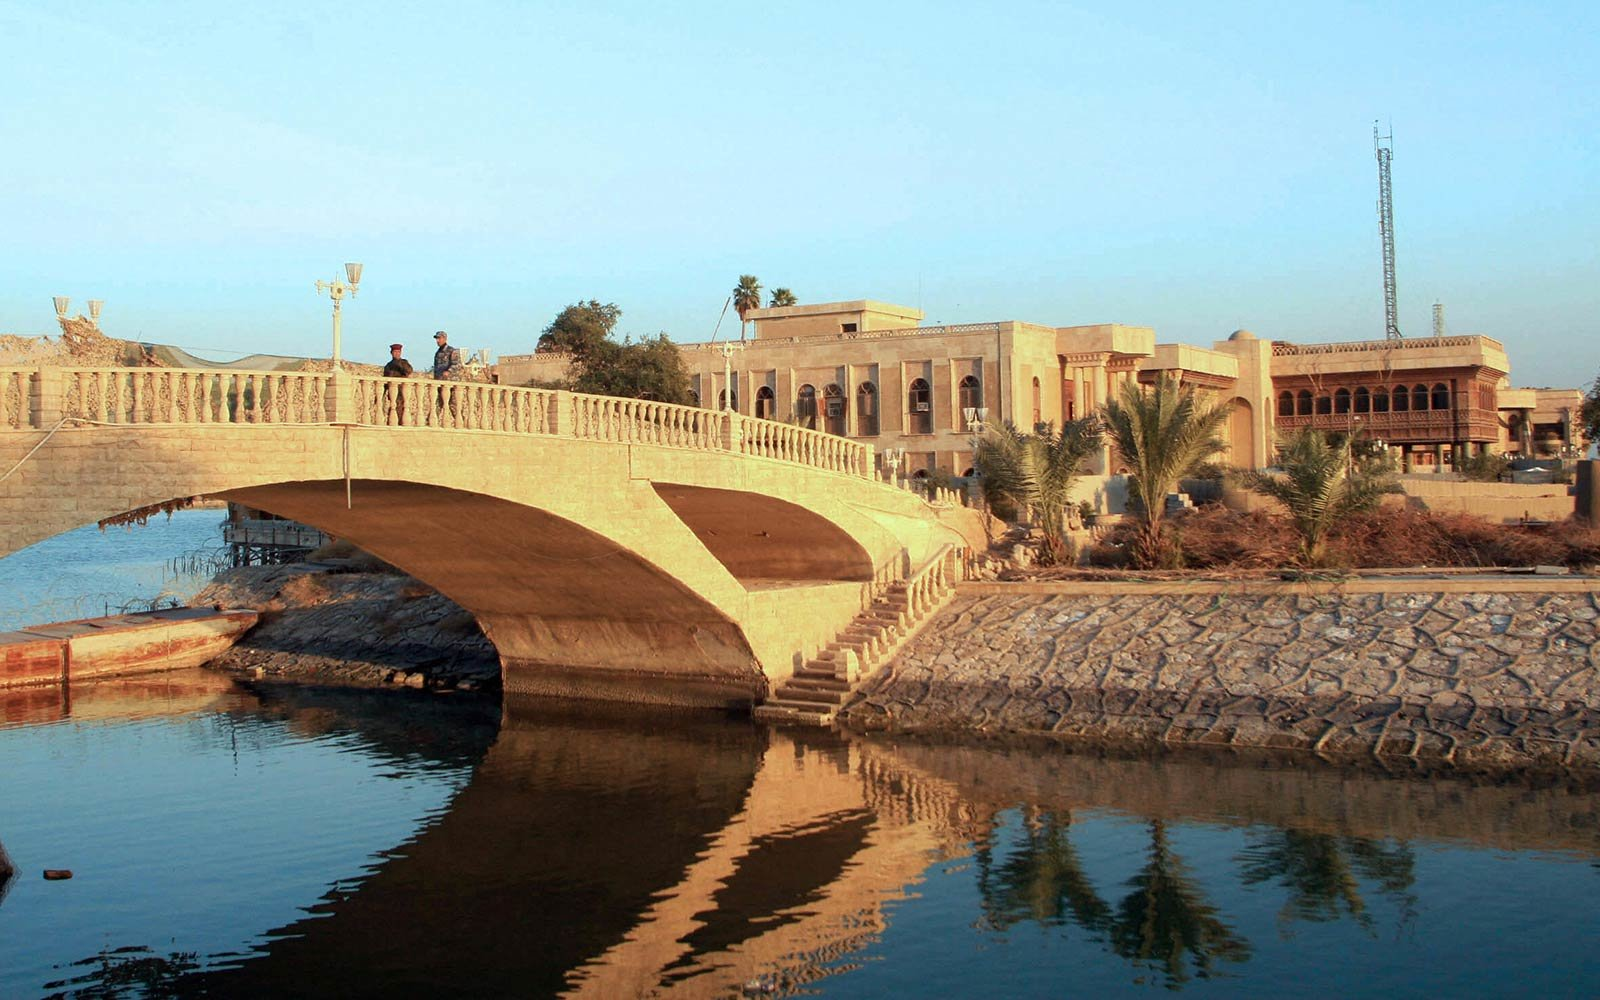 Basra Museum Opens in Husseins Old Palace